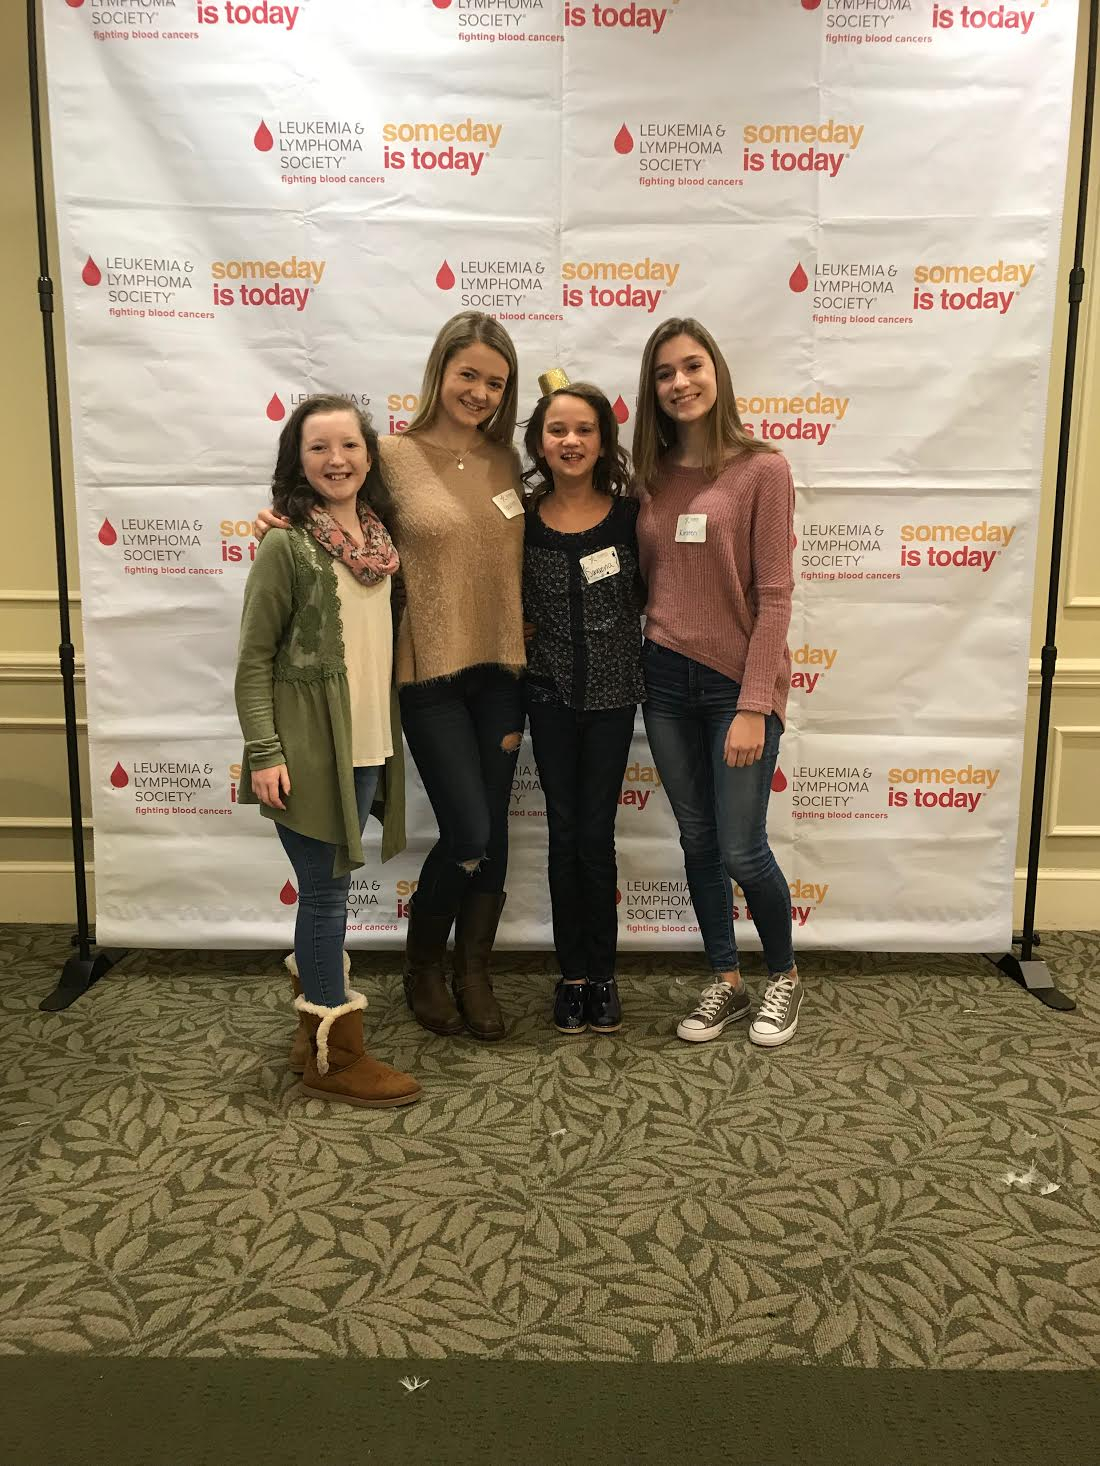 Juniors Lauren Hensley and Kirsten Hebb stand with the Leukemia & Lymphoma Society through their search for cancer cures.